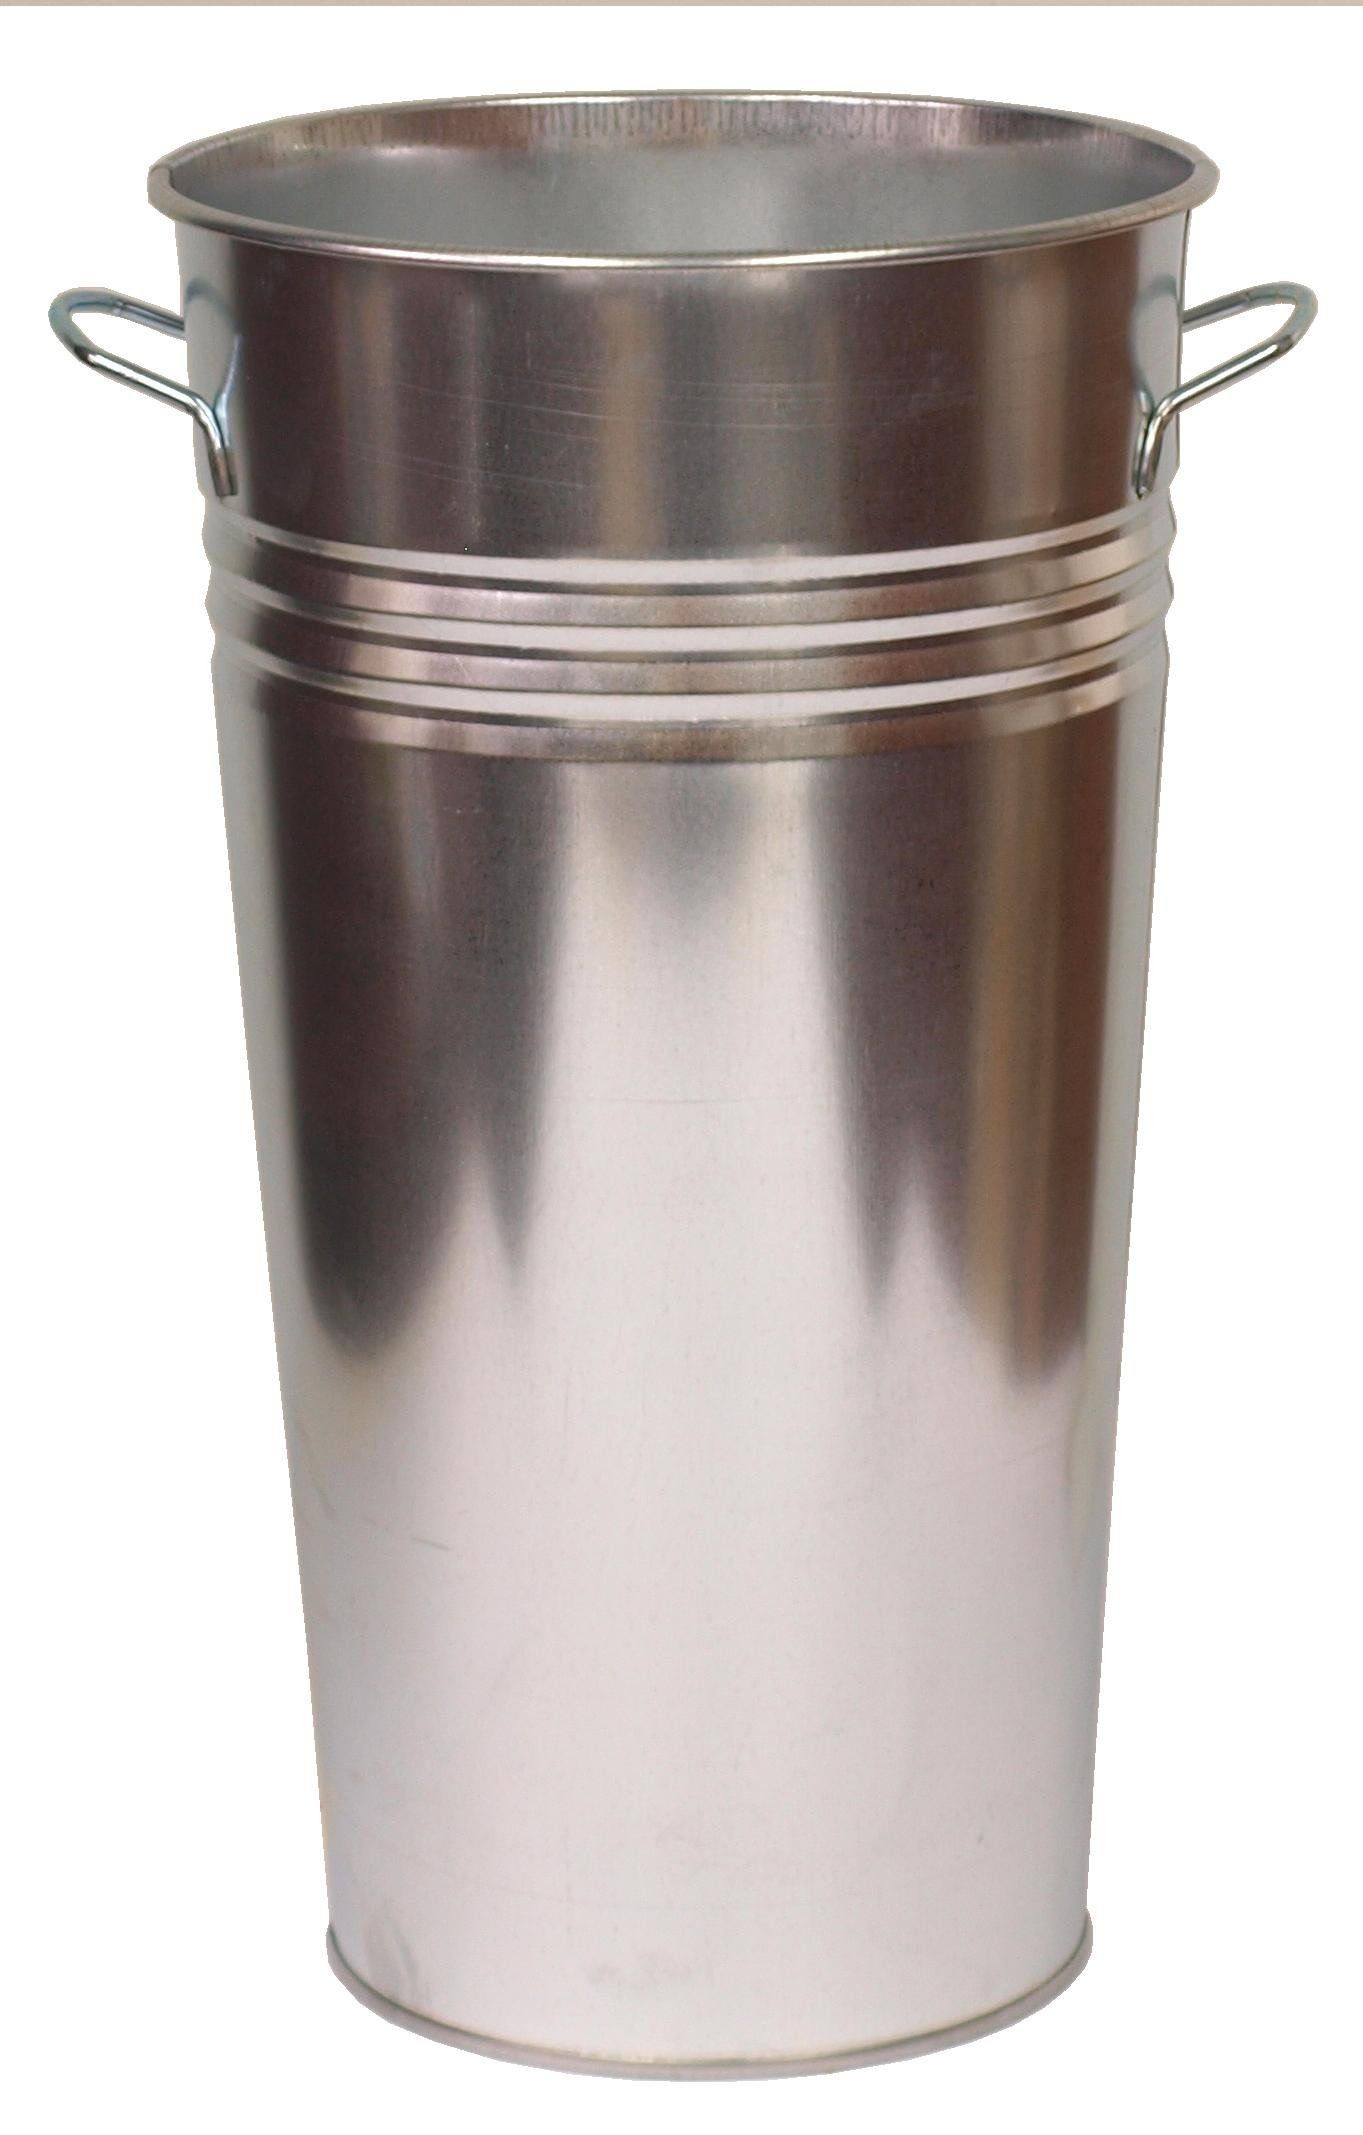 stainless steel bud vase of houston international trading galvanized vase rustproof galvanized throughout houston international trading galvanized vase rustproof galvanized steel great for fresh cut flowers and